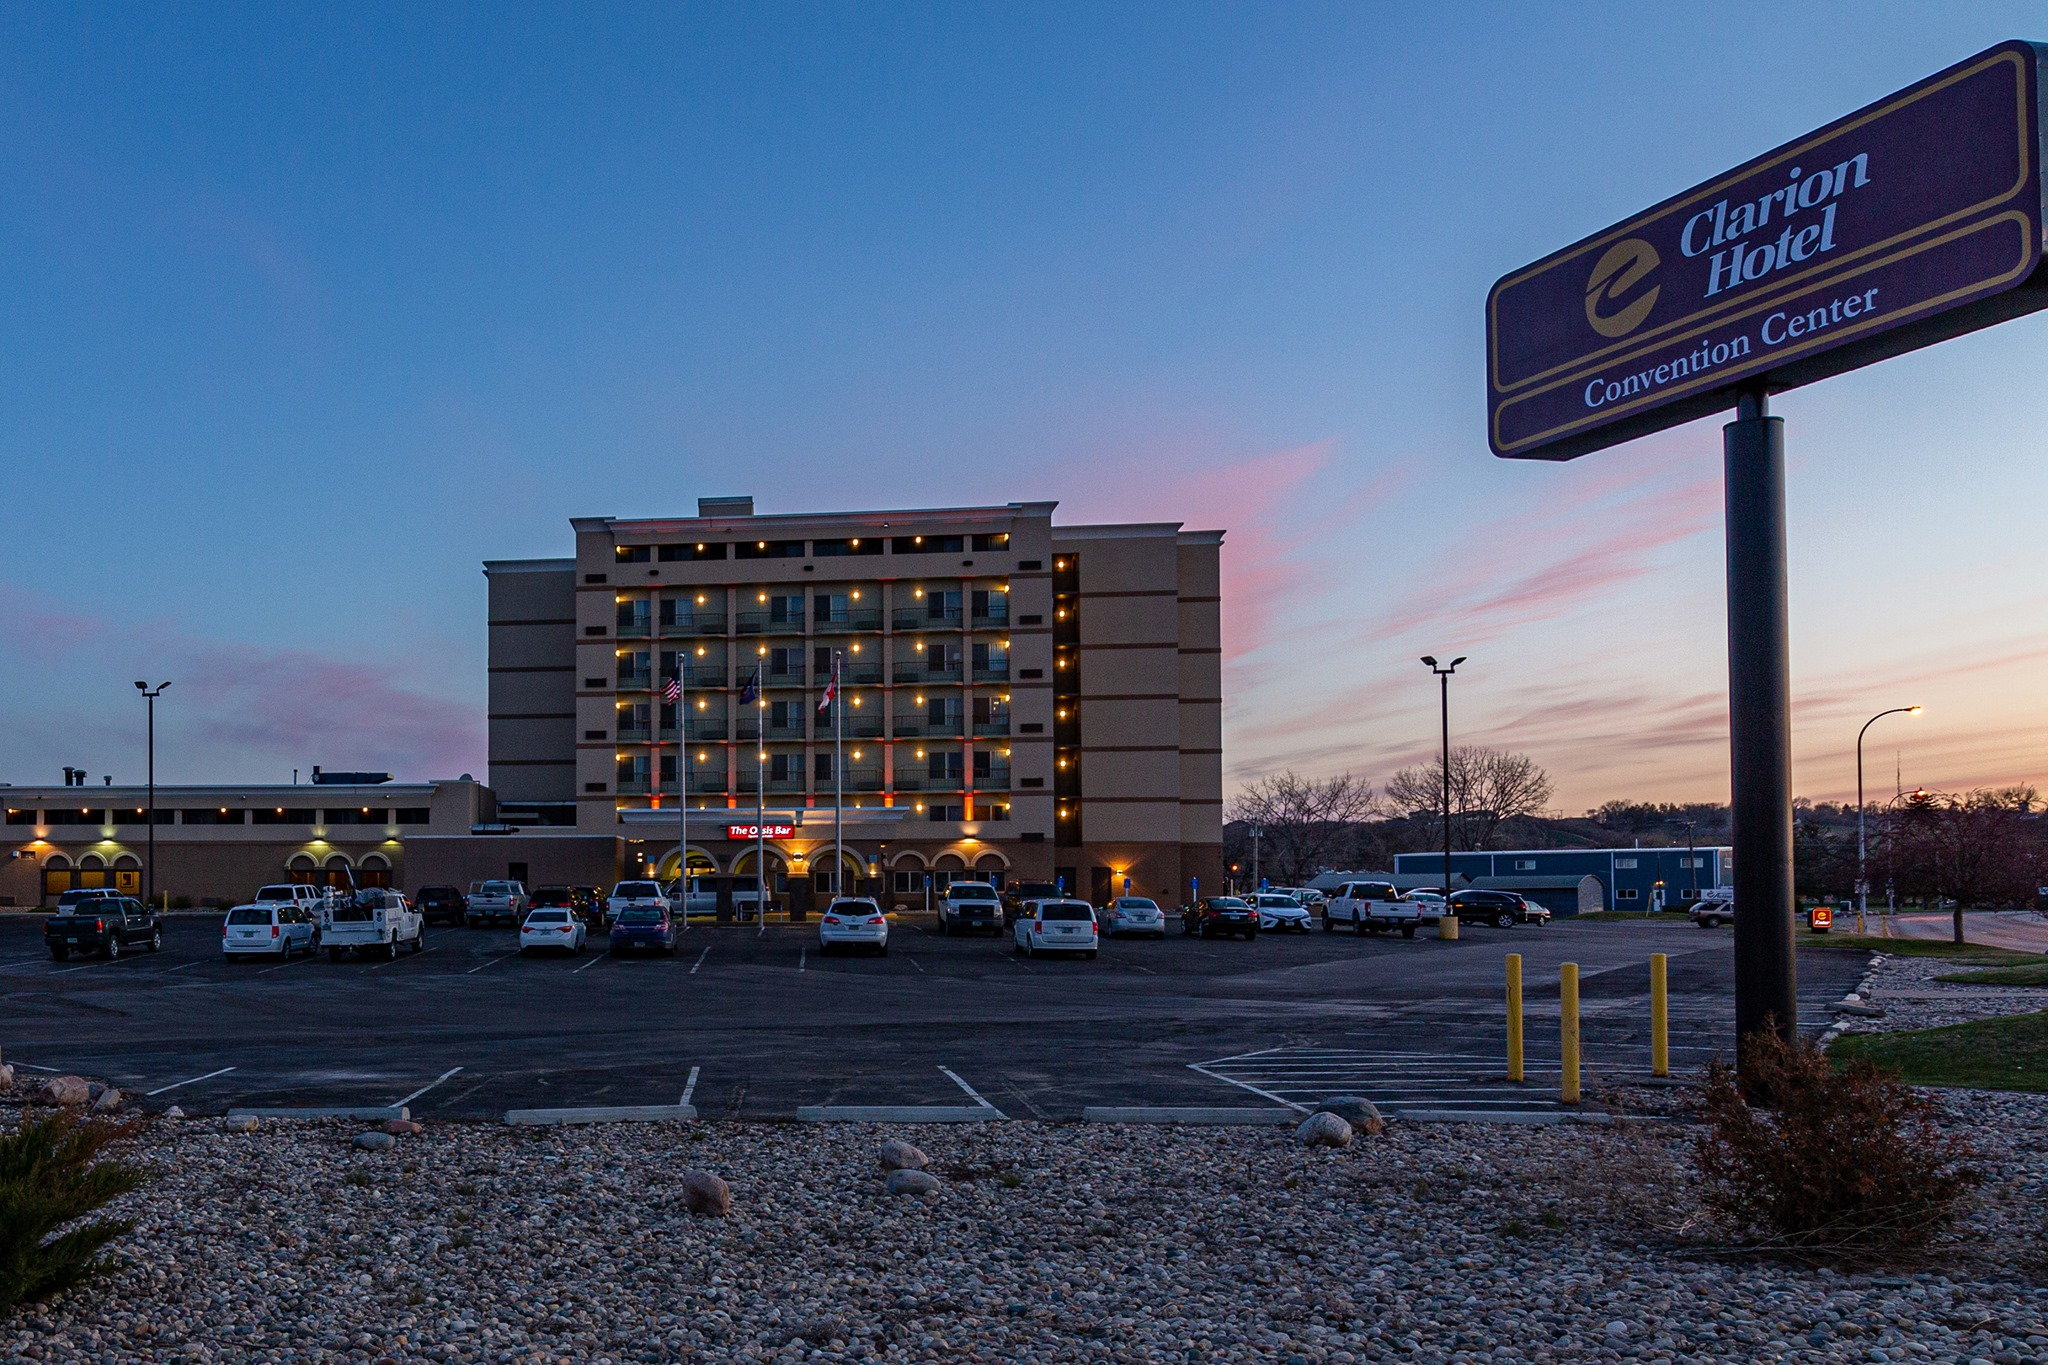 Clarion Hotel & Convention Center